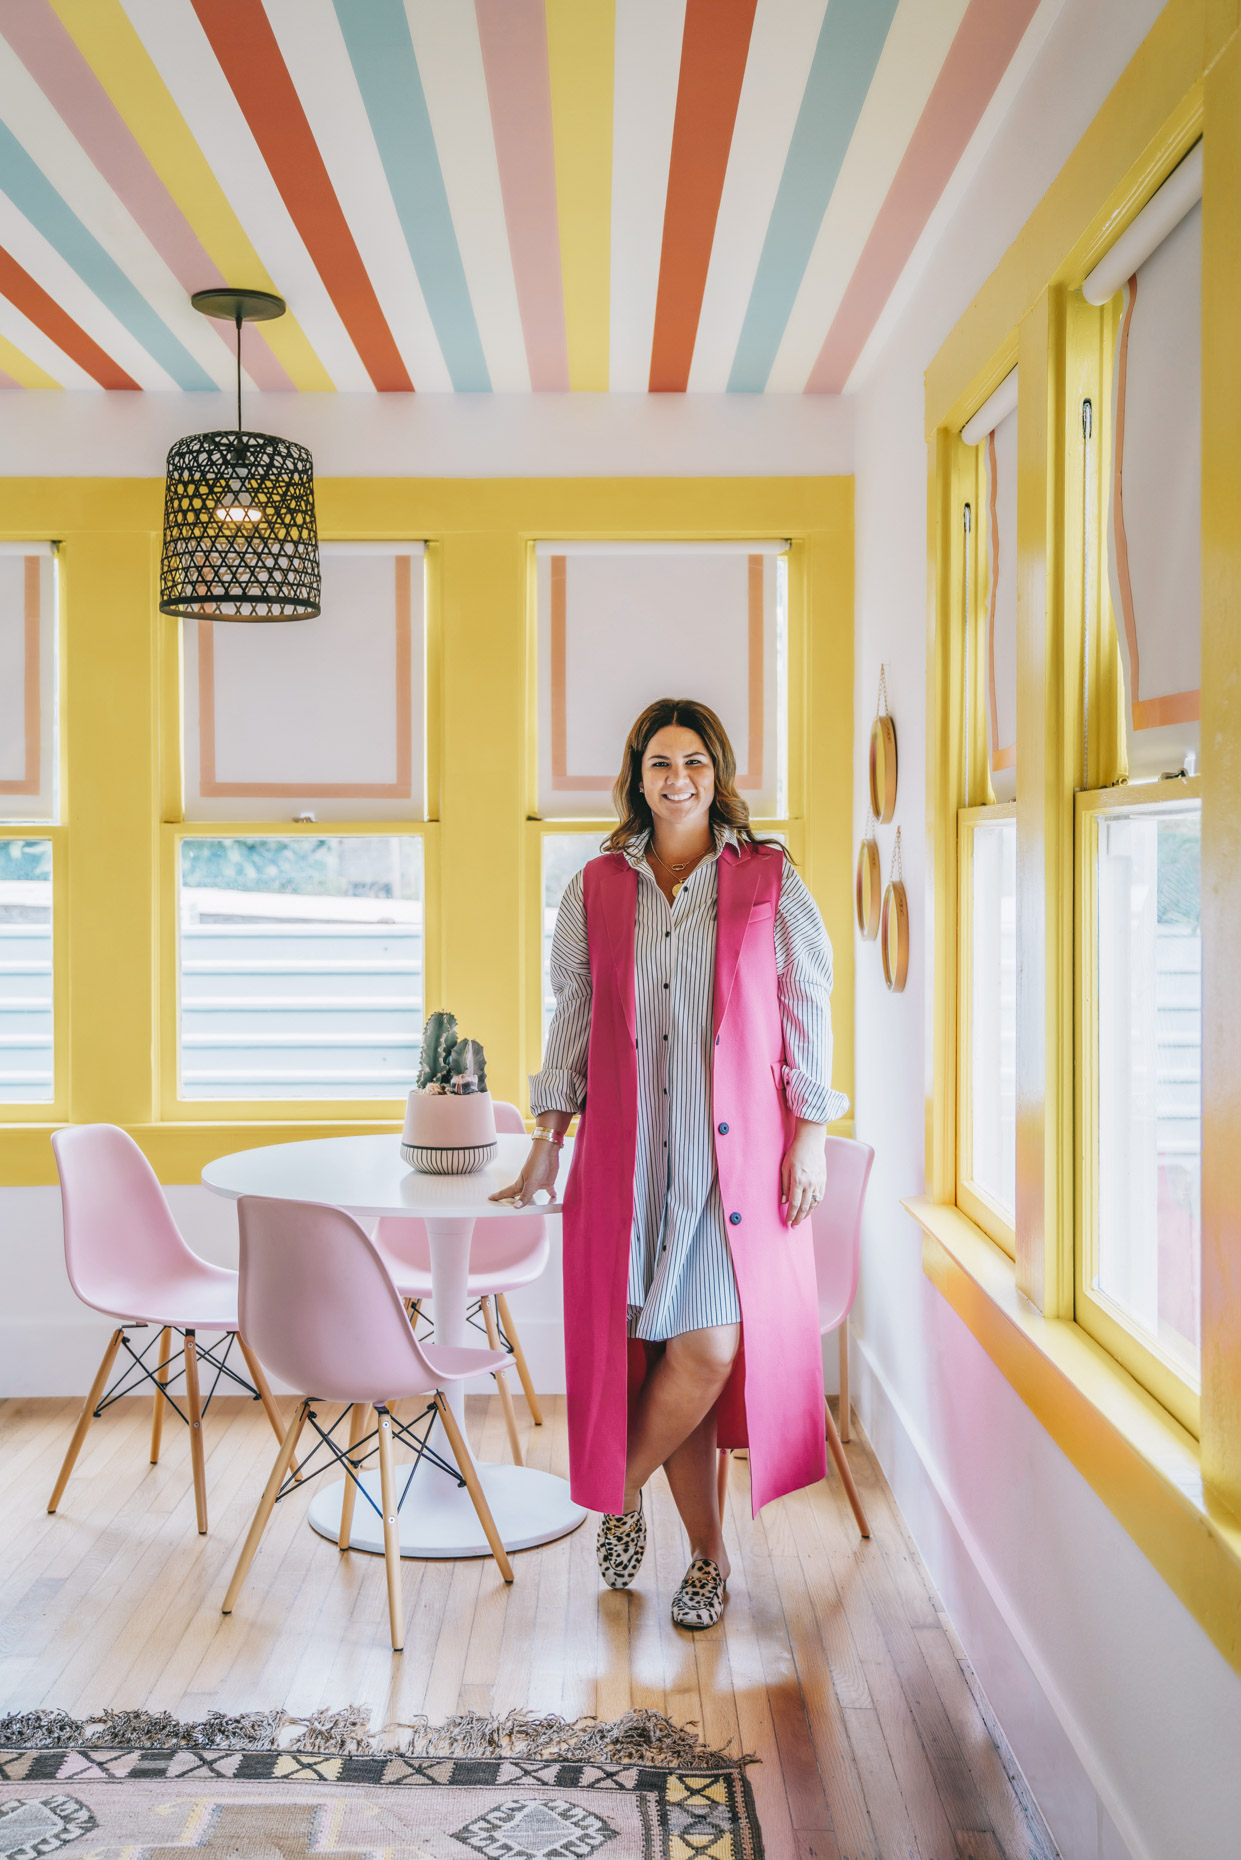 Portrait of textile designer Katie Kime in office with rainbow pink, yellow, blue paint